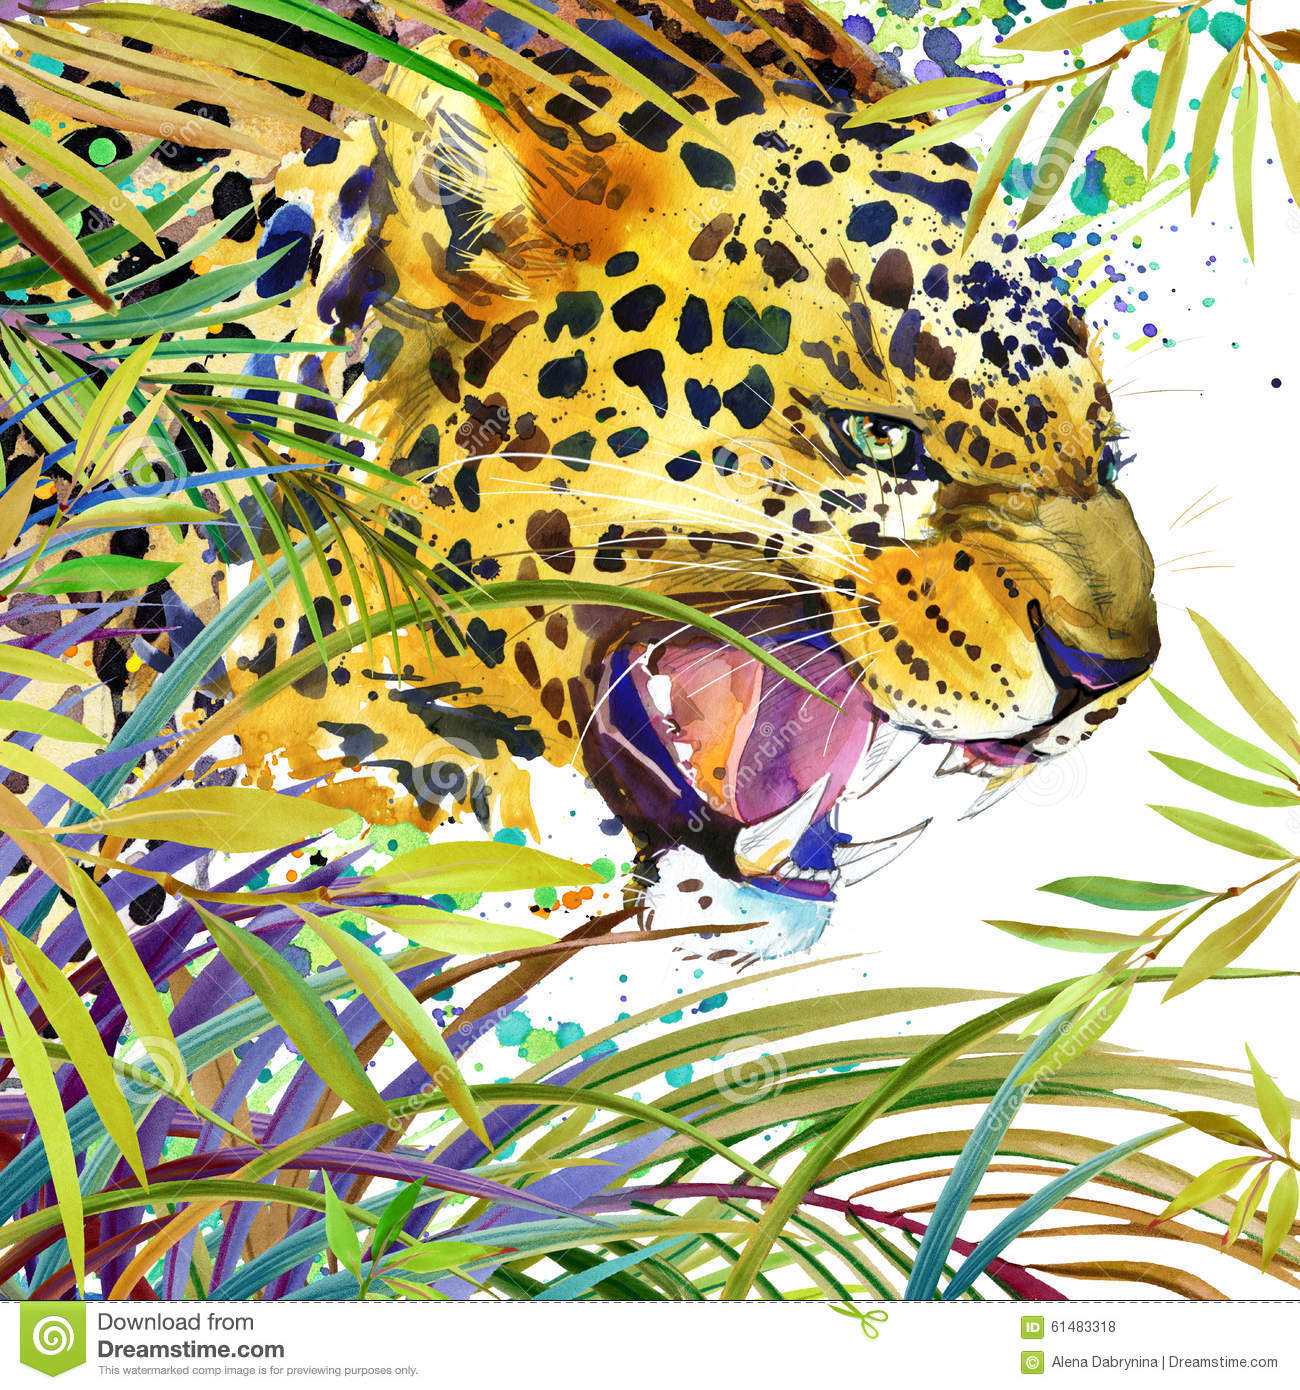 Tropical exotic forest, jaguar, green leaves, wildlife, watercolor illustration.